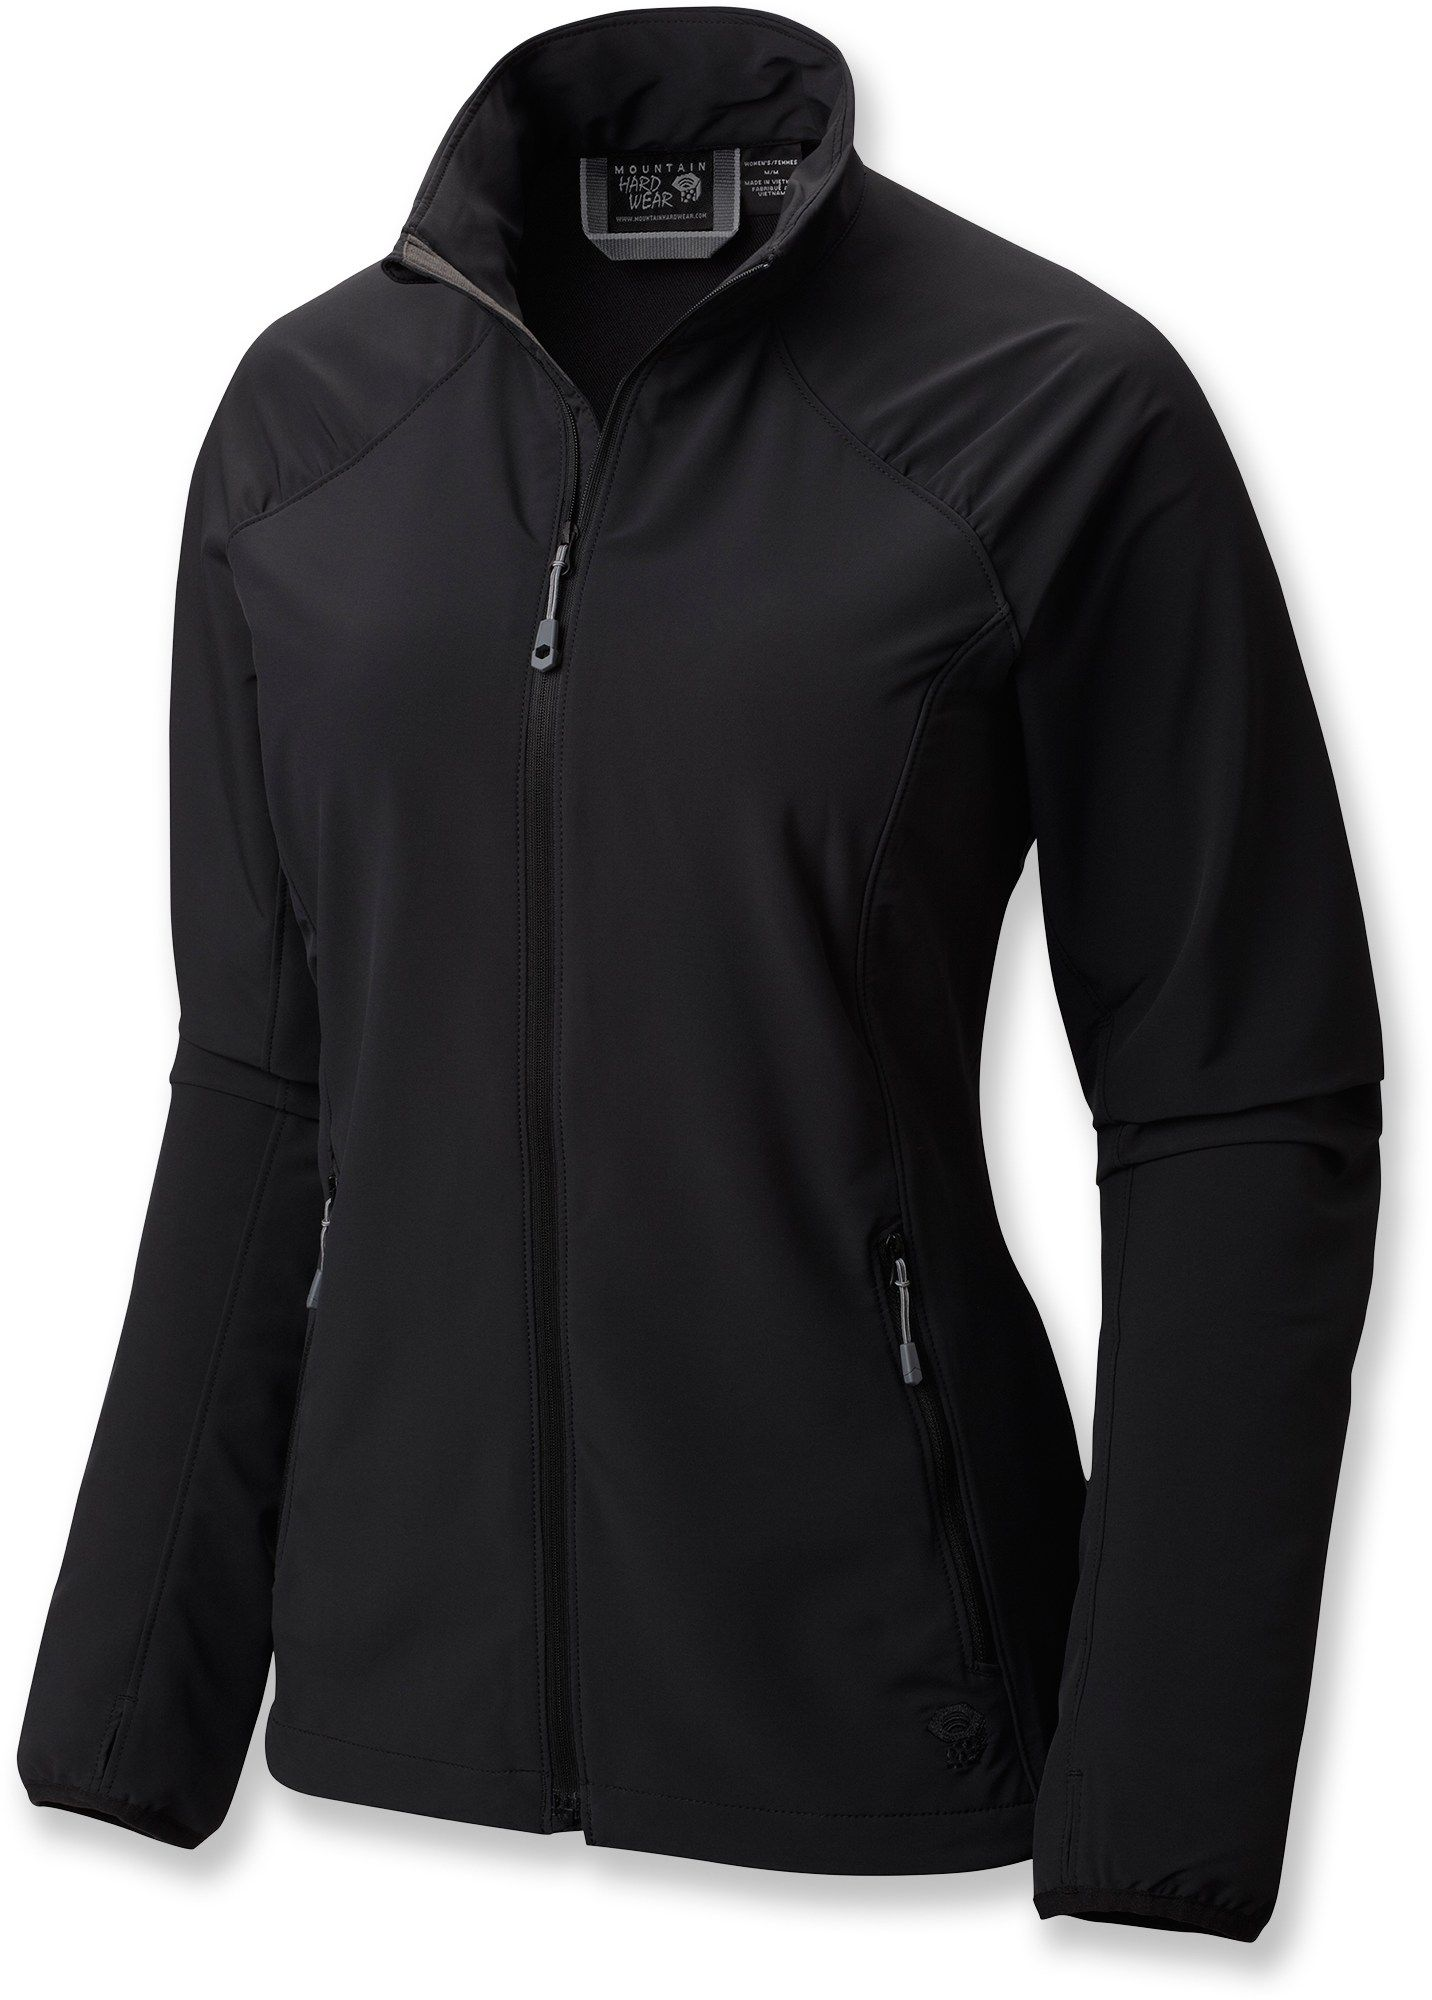 Mountain Hardwear Female Chockstone Jacket - Women's